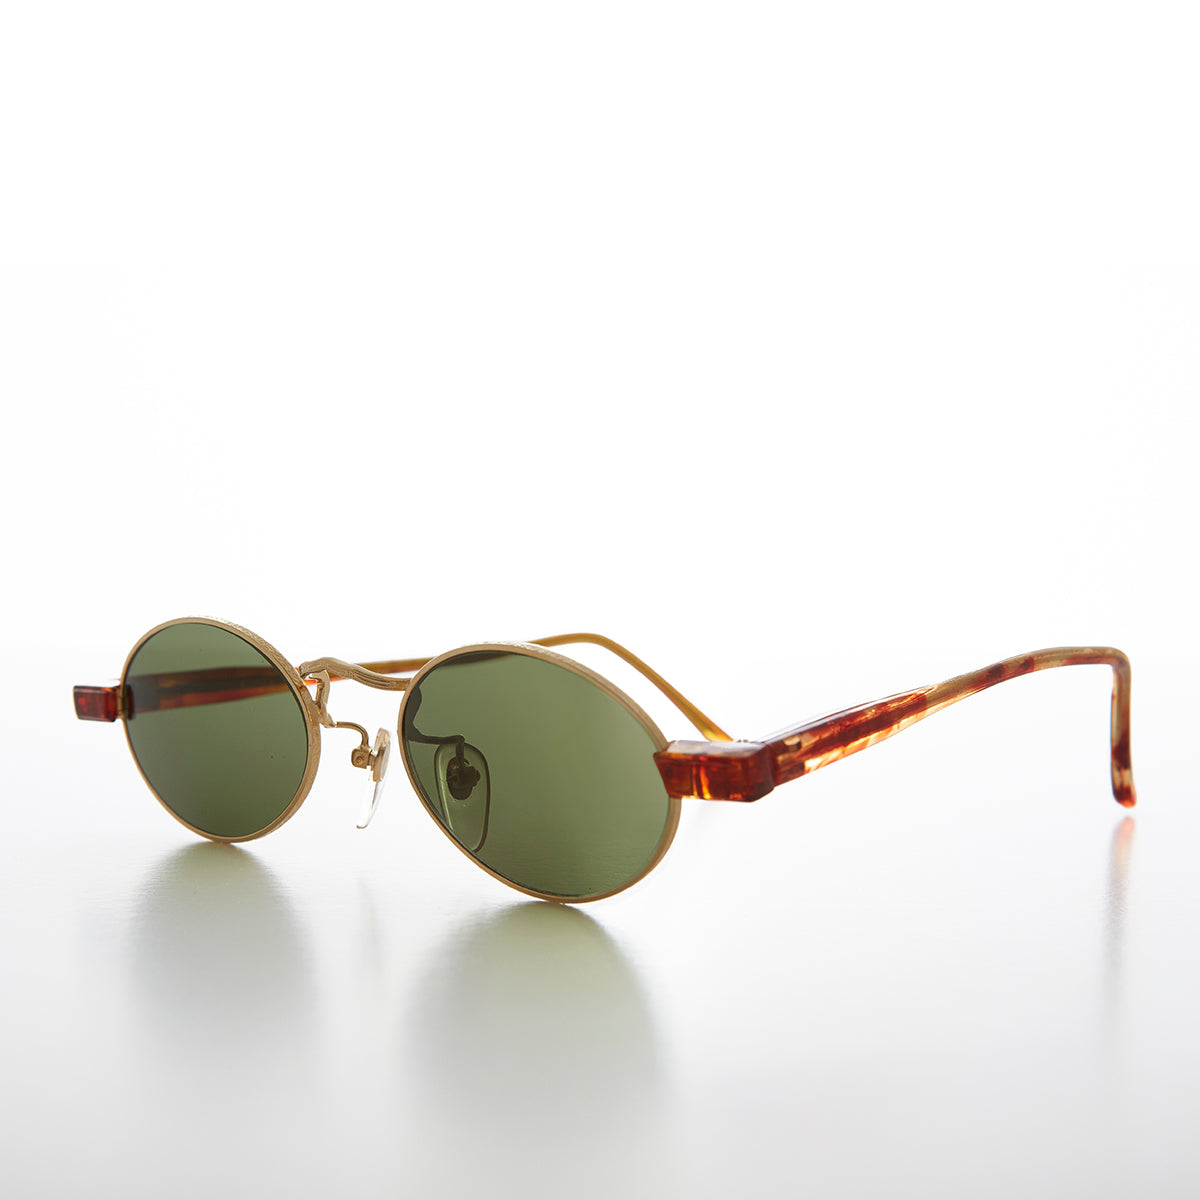 Small Oval Spectacle Style Vintage Sunglasses